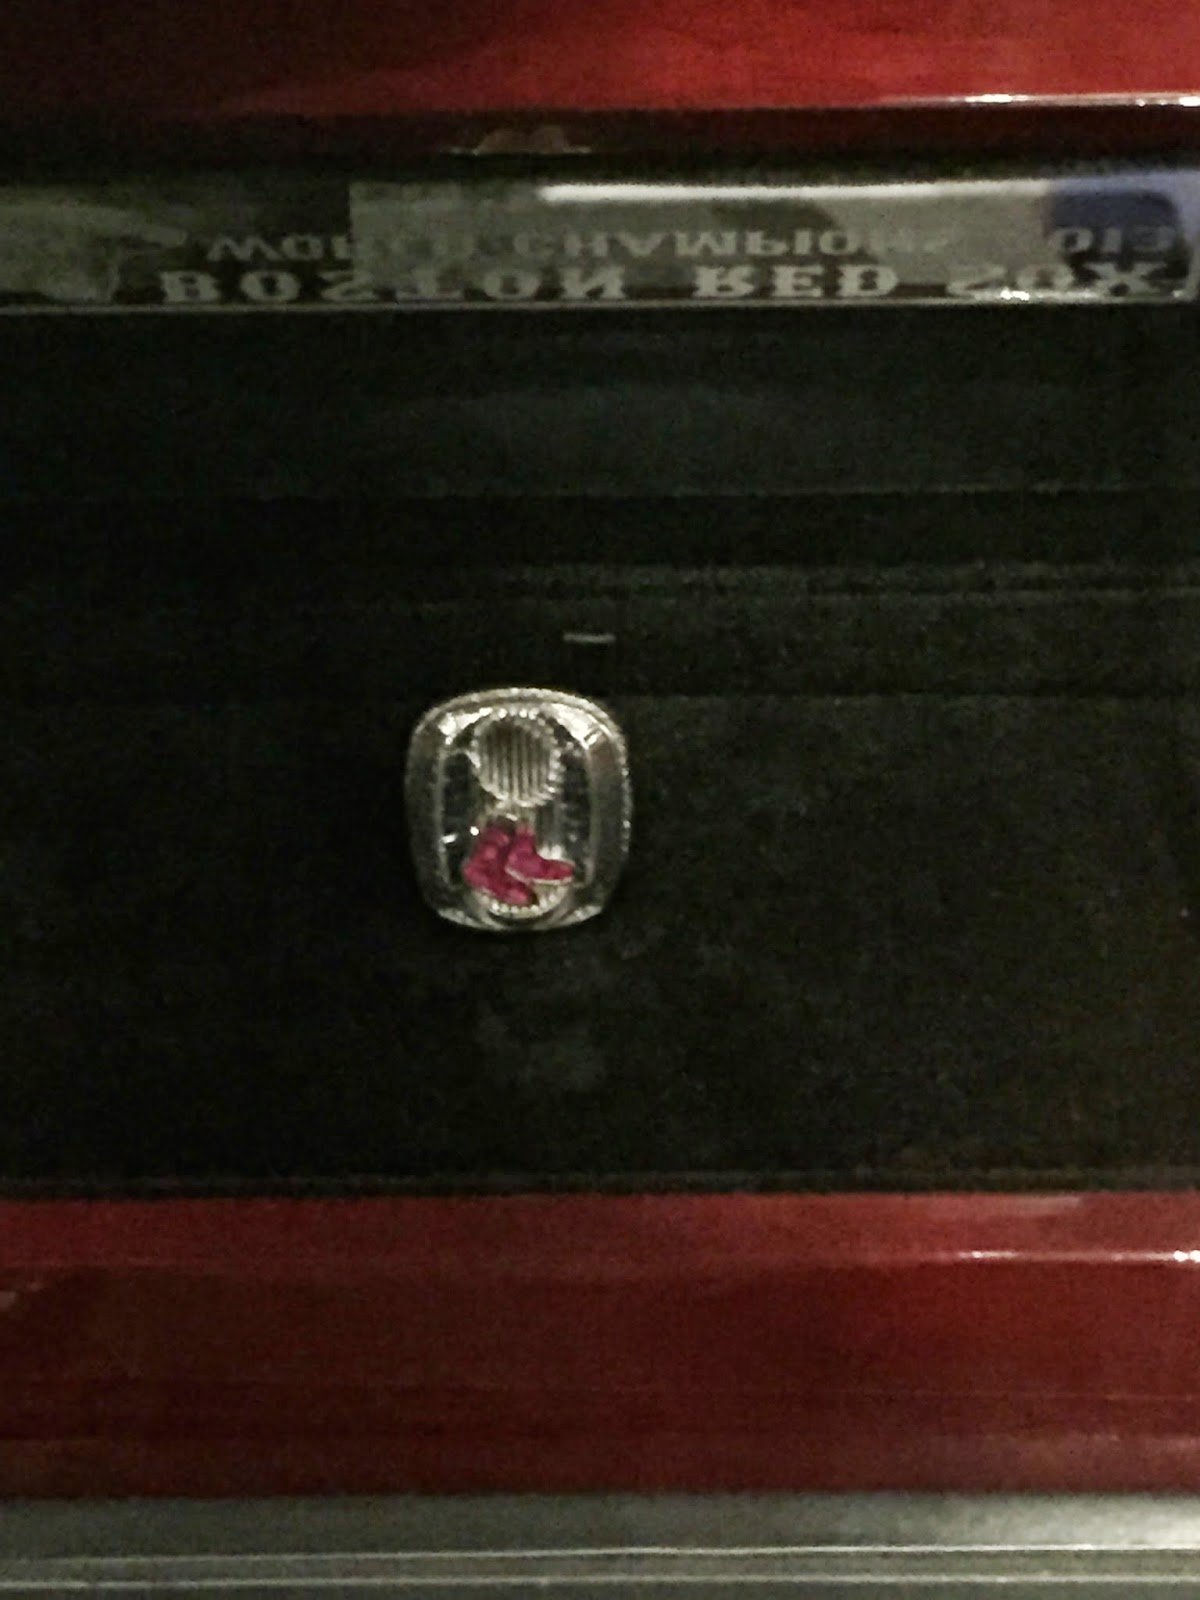 2013 World Series Ring, Red Sox World Series Champions